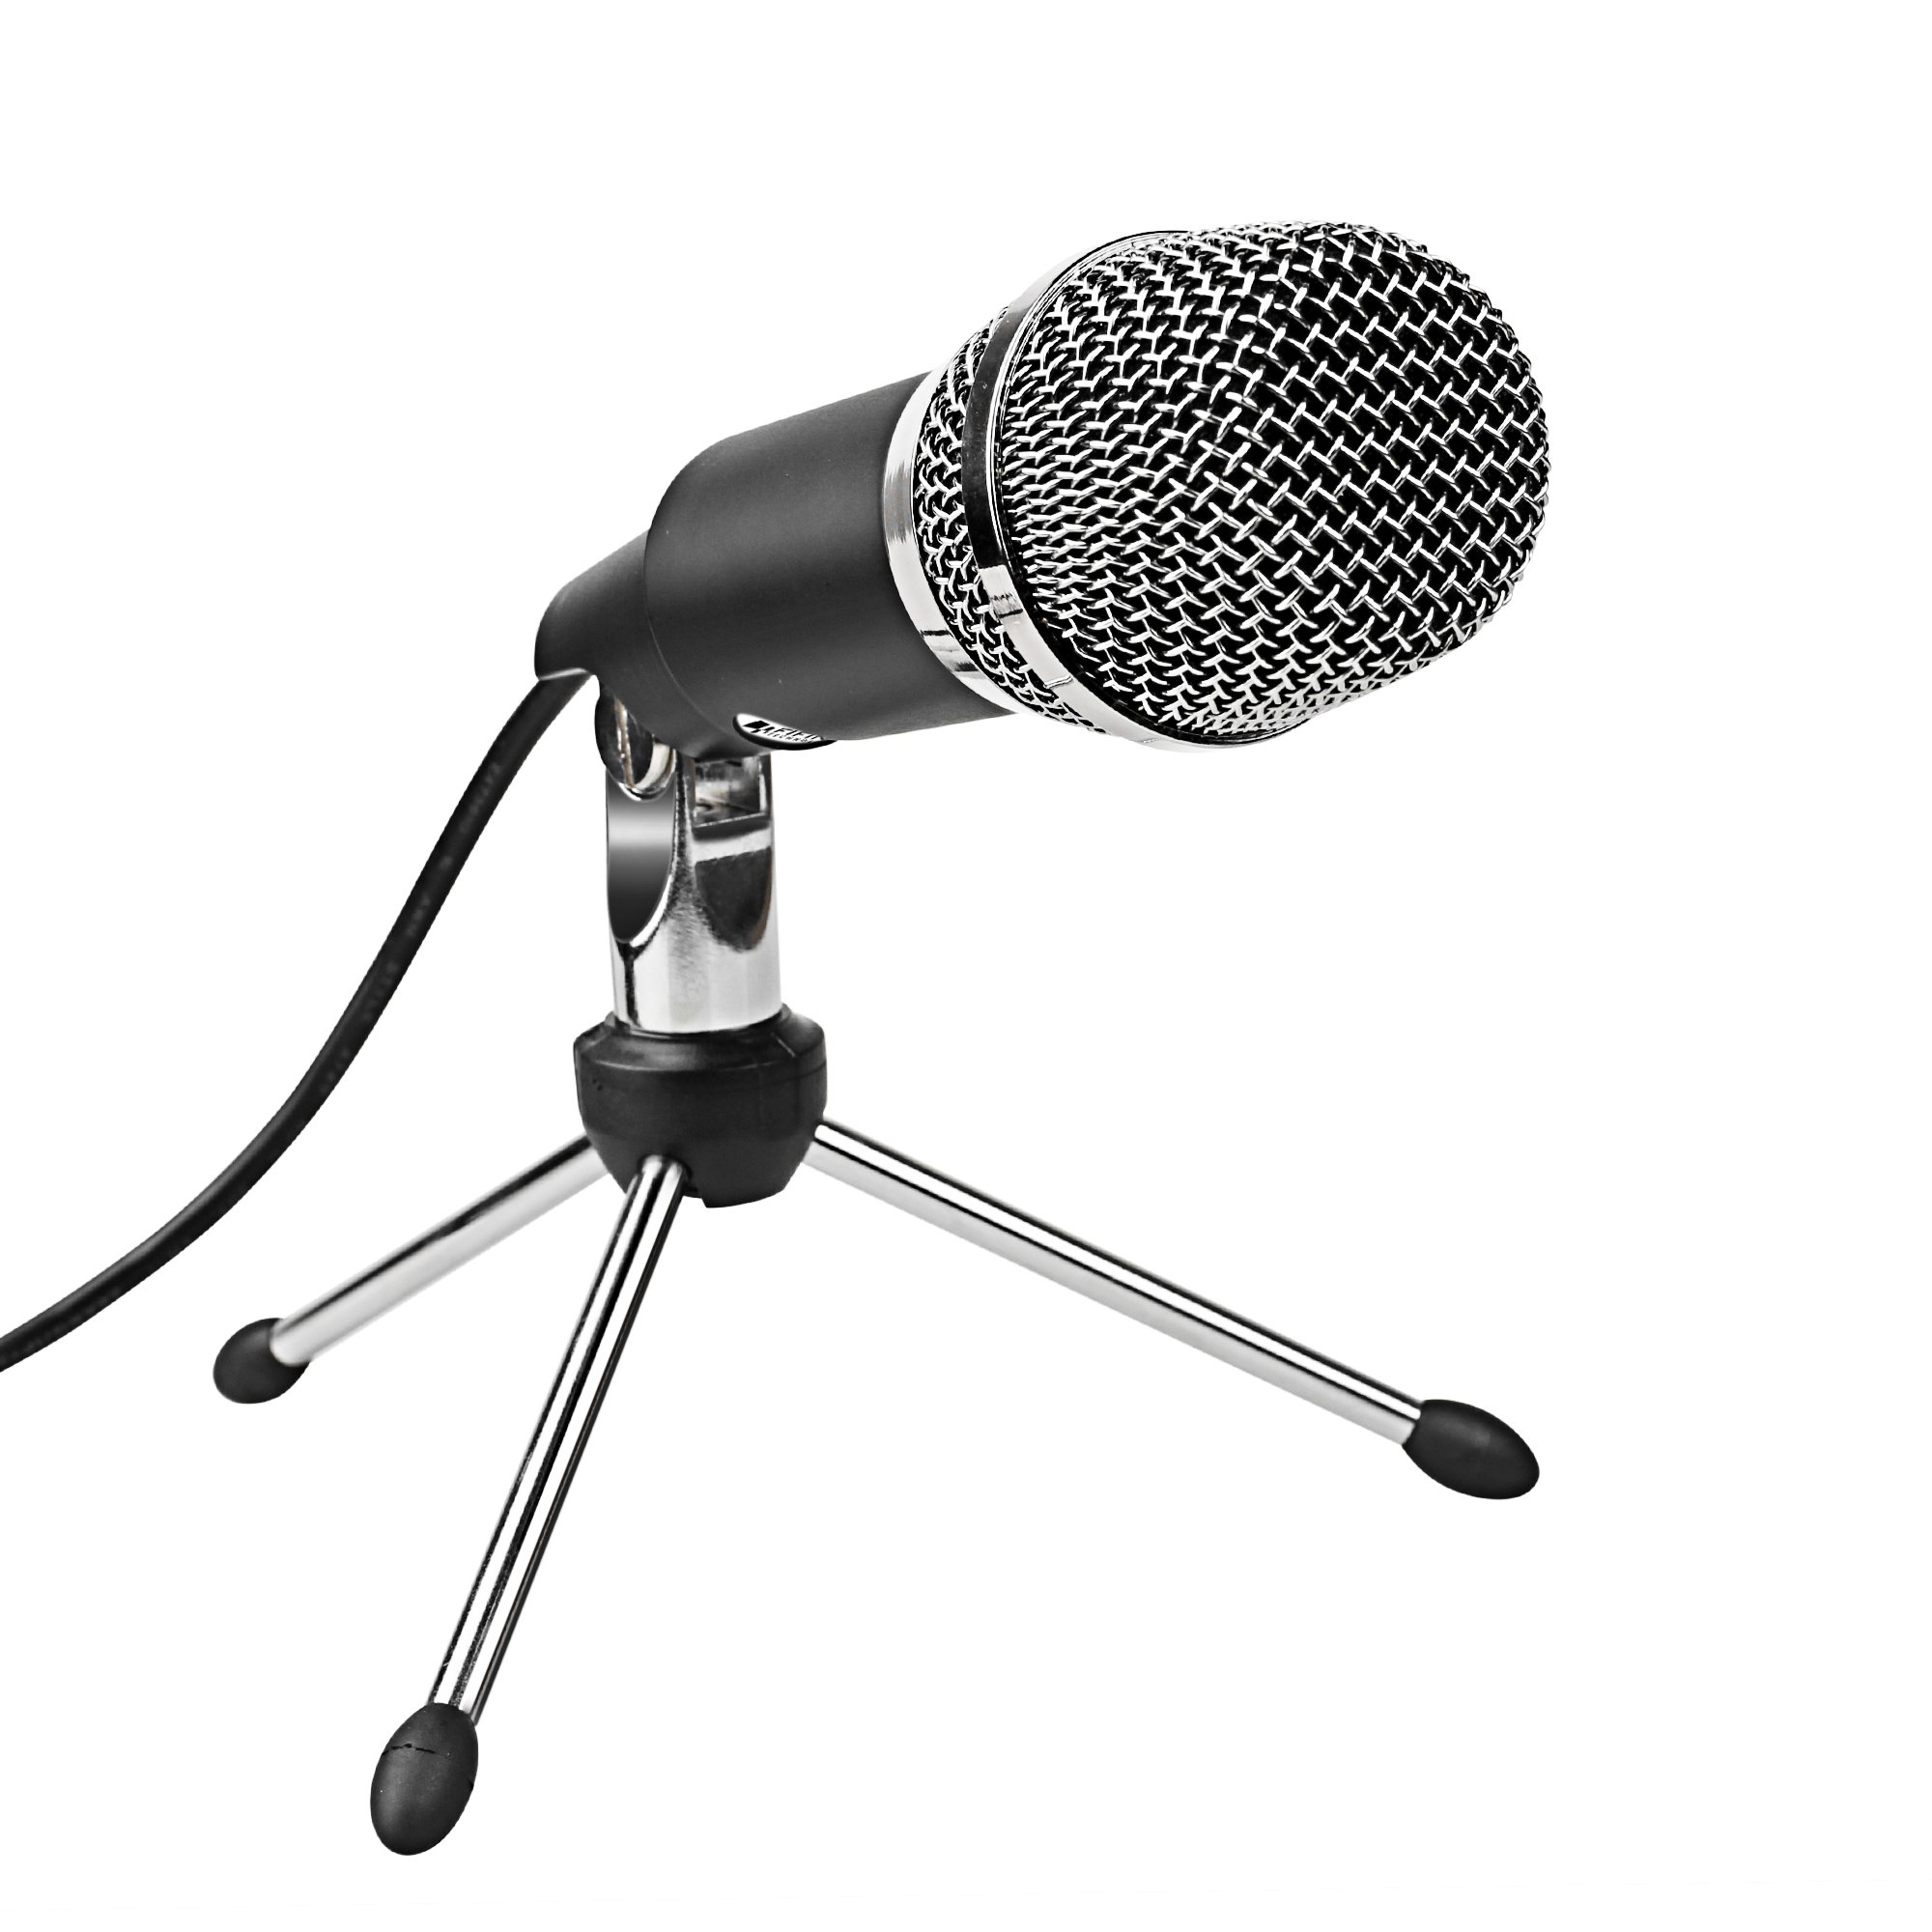 FIFINE TECHNOLOGY USB Microphone,Fifine Plug &Play Home Studio USB Condenser Microphone for Skype, Recordings for YouTube, Google Voice Search, Games(Windows/Mac)-K668 by FIFINE TECHNOLOGY (Image #2)